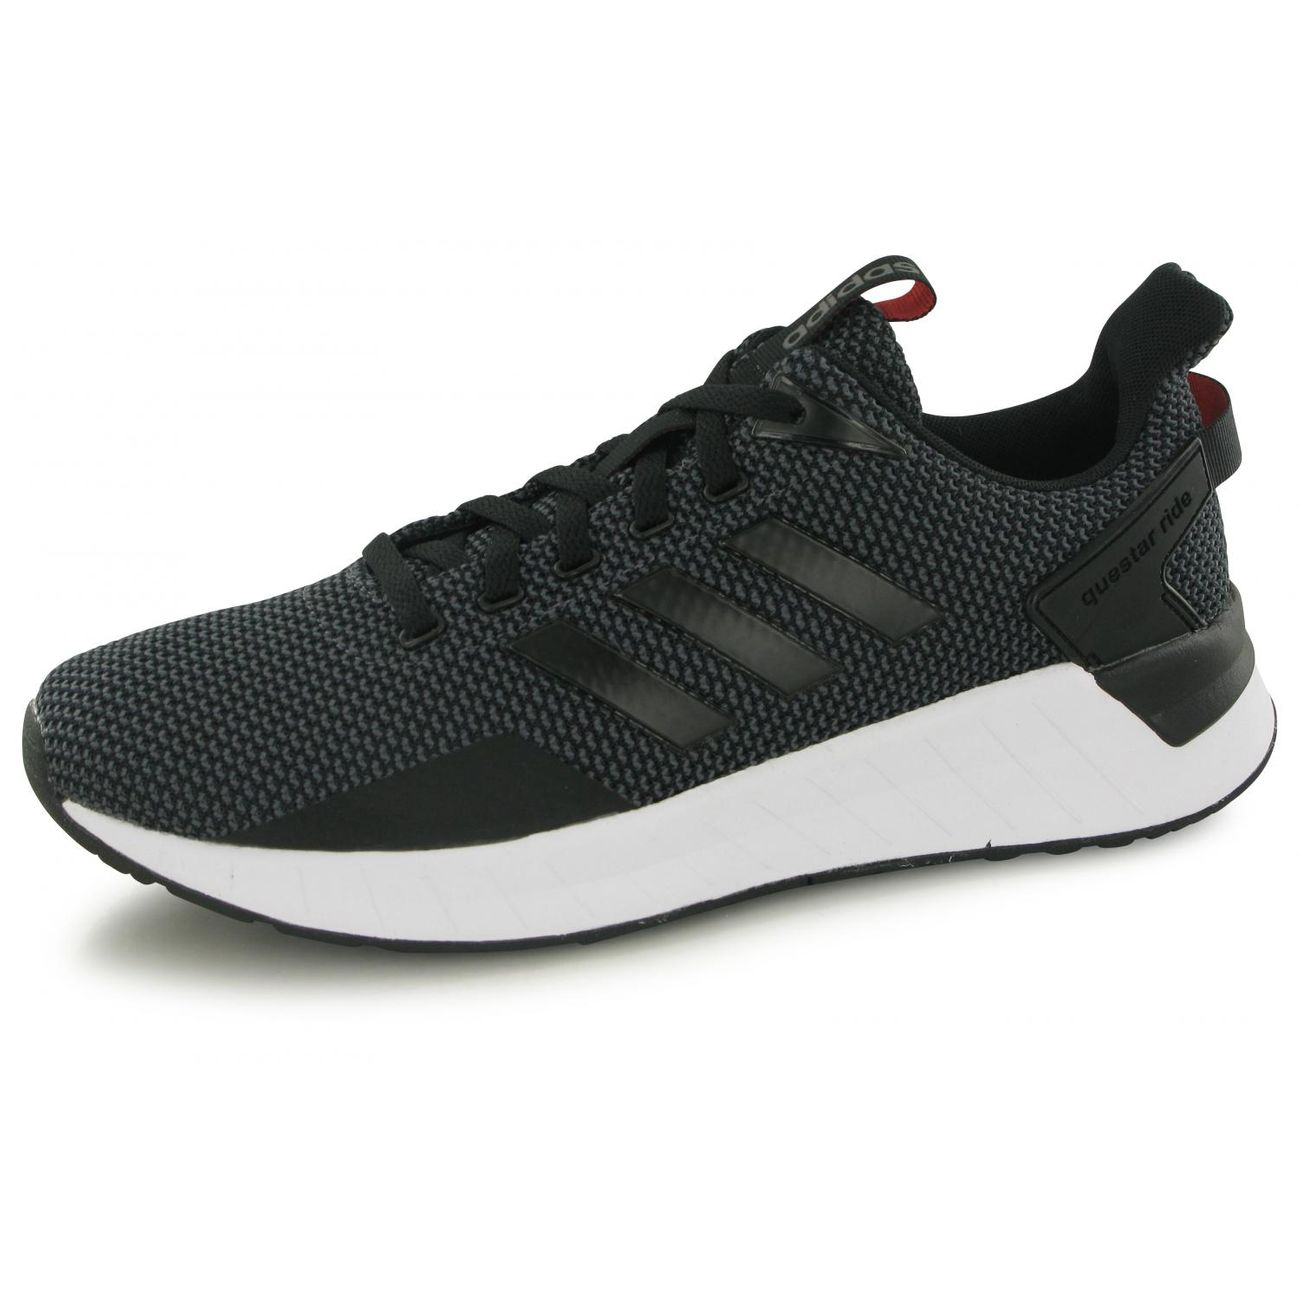 Questar Homme Adidas ModeLifestyle Baskets Ride PXOikZuT